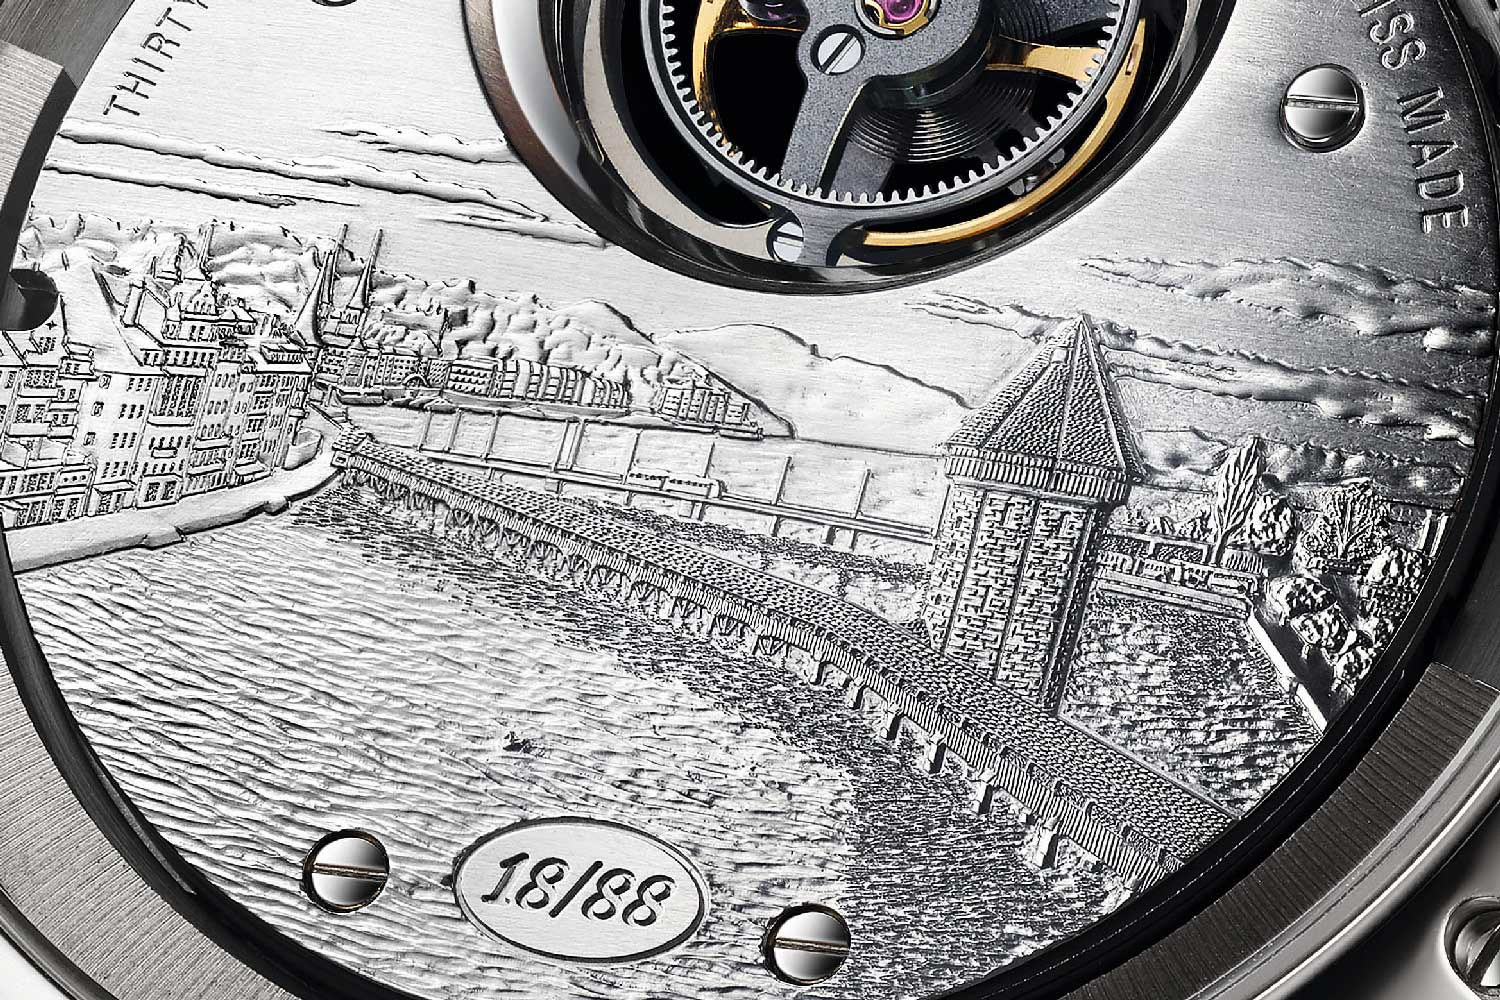 The caseback has an elaborate engraving of a city view of Lucerne, an ode to Carl F. Bucherer's hometown.